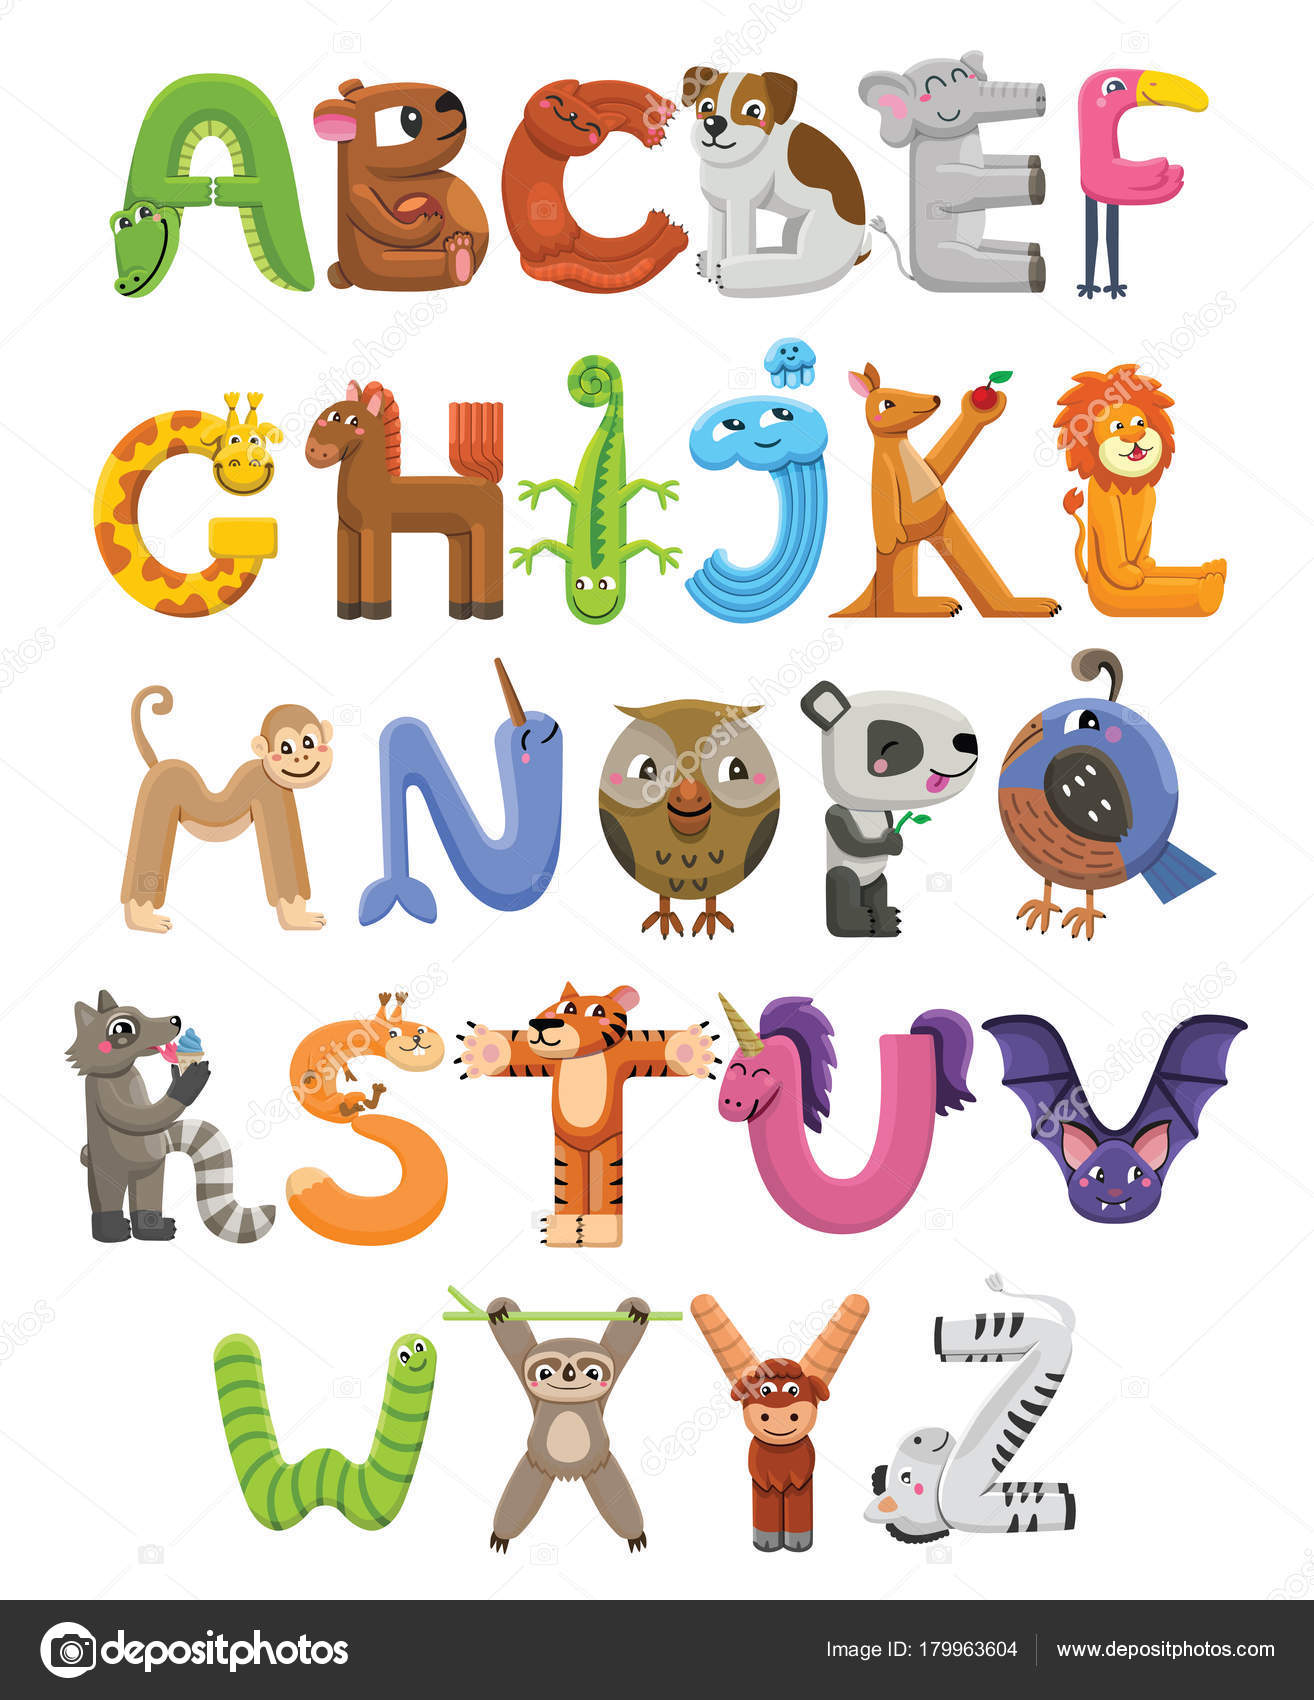 4 letter animals animado abecedario abecedario zoo alfabeto animal 20099 | depositphotos 179963604 stock illustration zoo alphabet animal alphabet letters